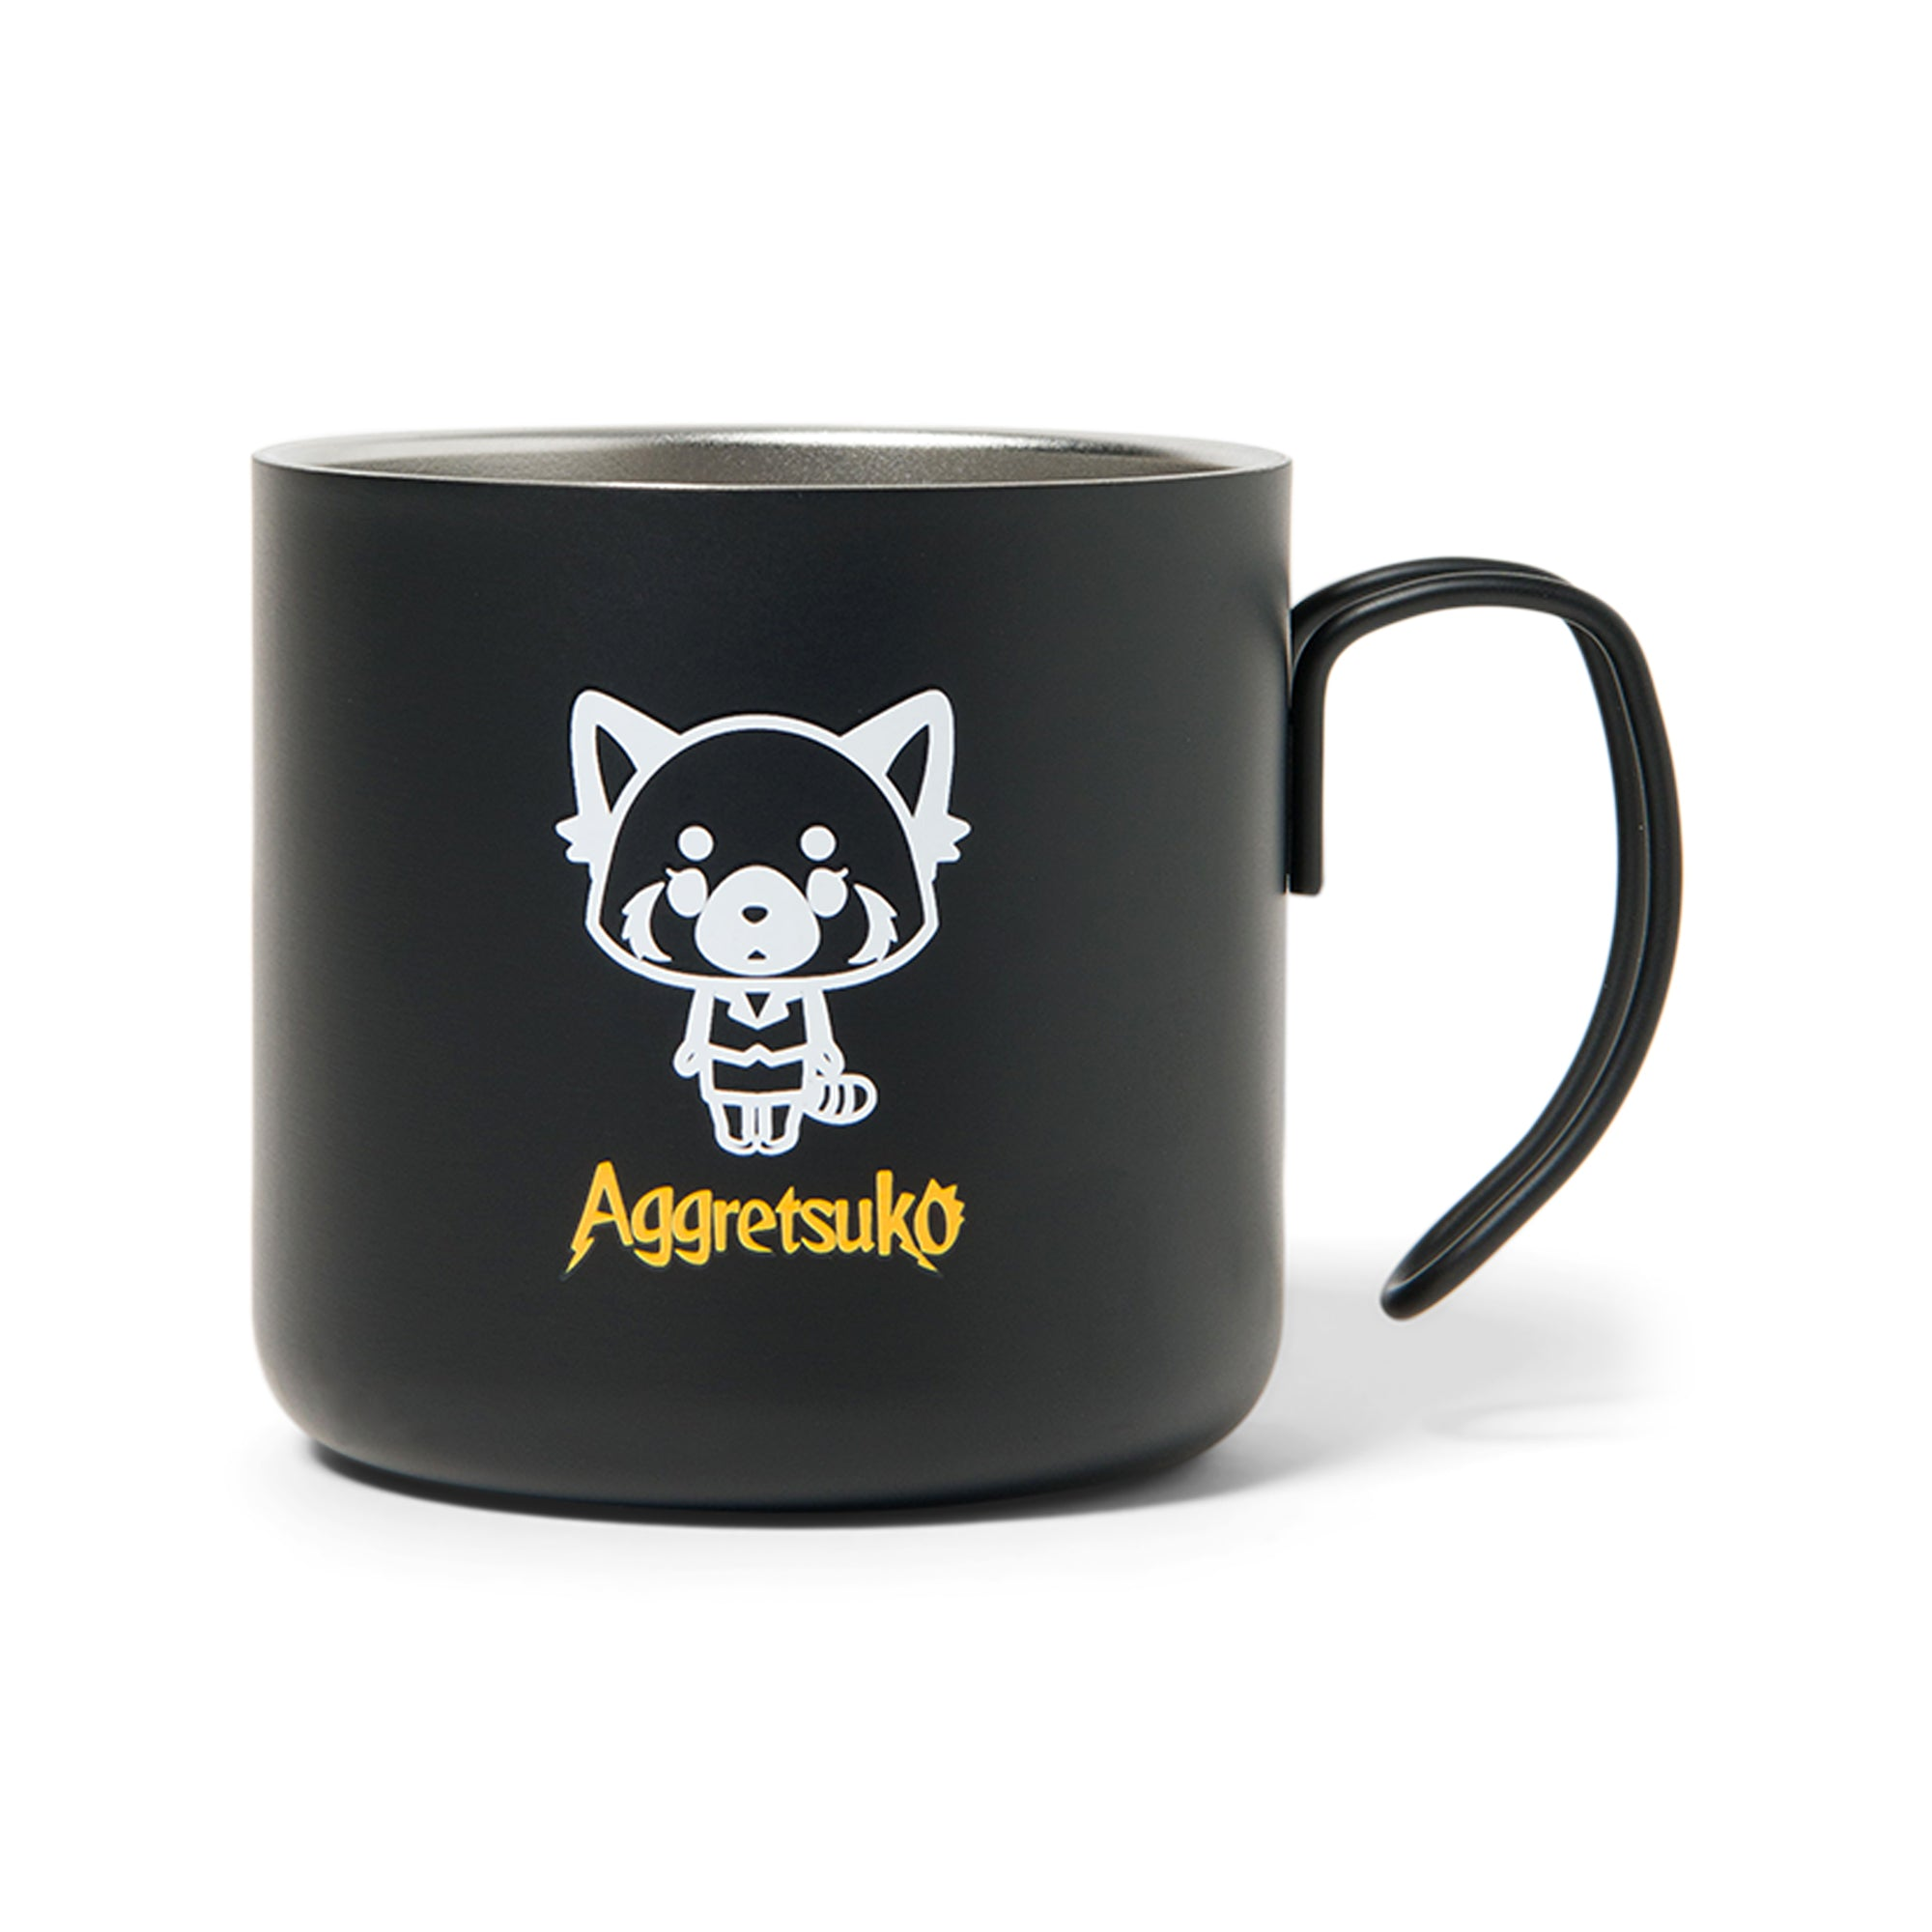 Aggretsuko Black Stainless Steel Mug